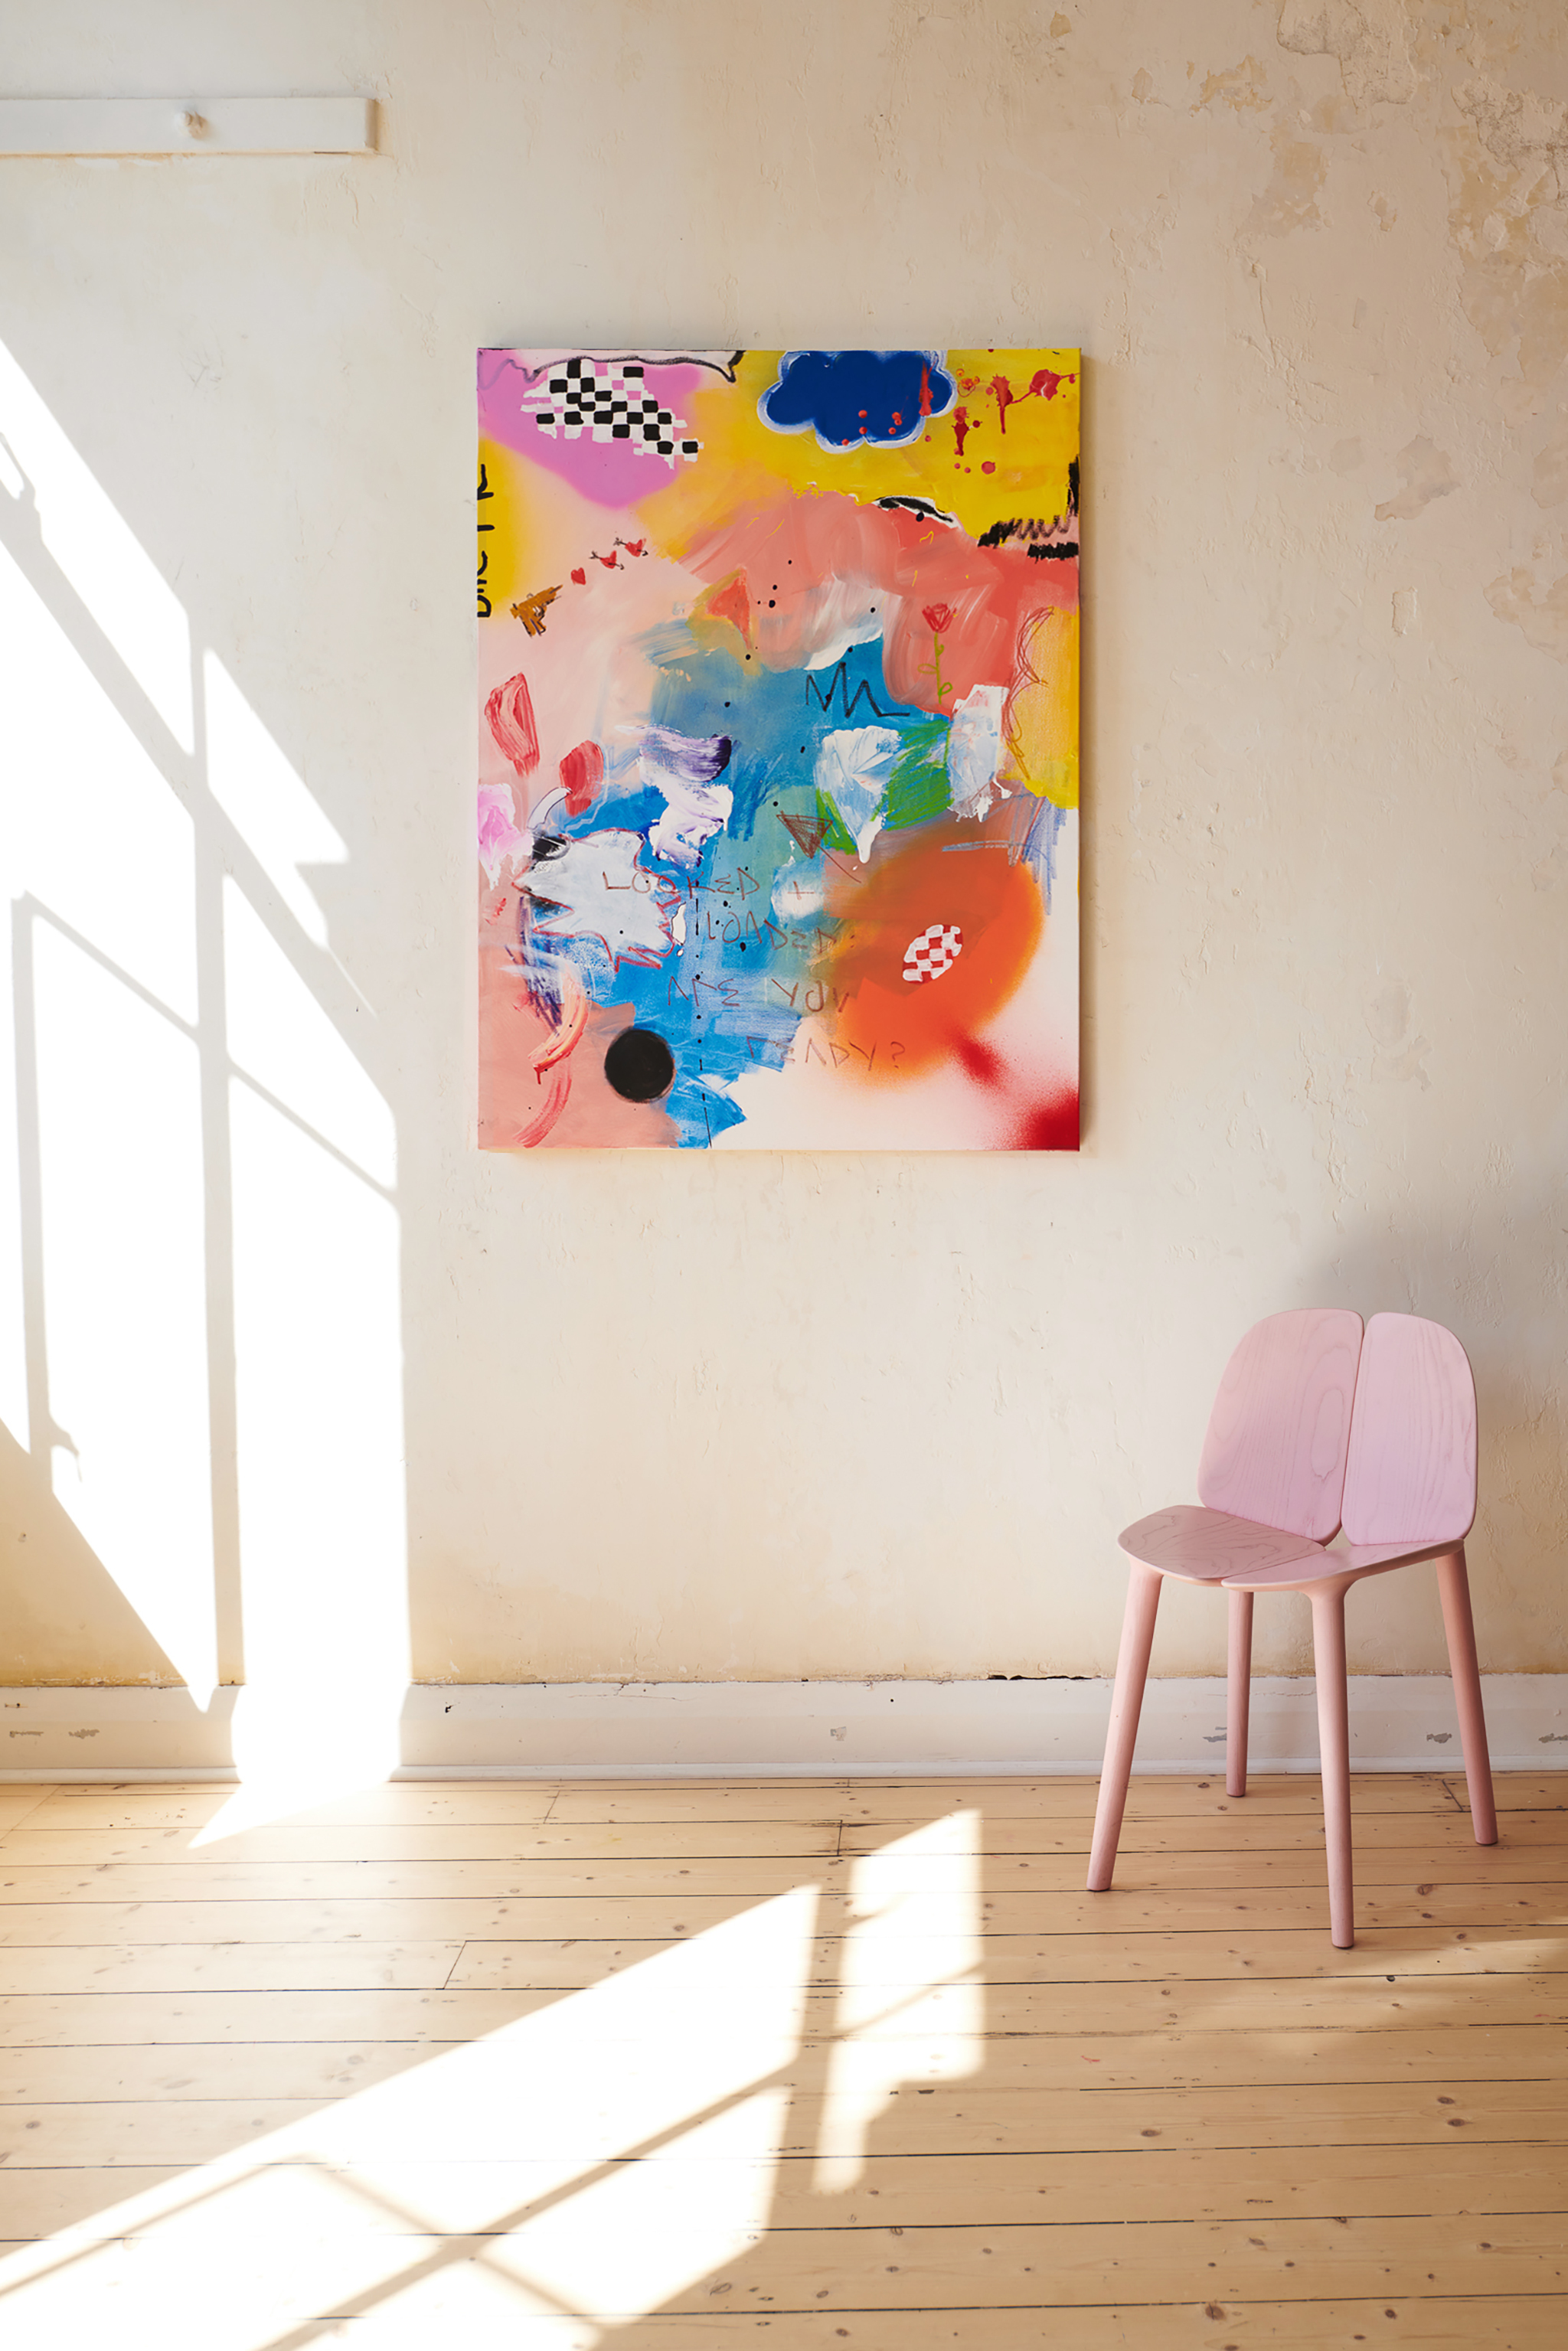 Marisa Mu At the above The Lover 91cm x 122cm acrylic oil pastels and crayon on canvas